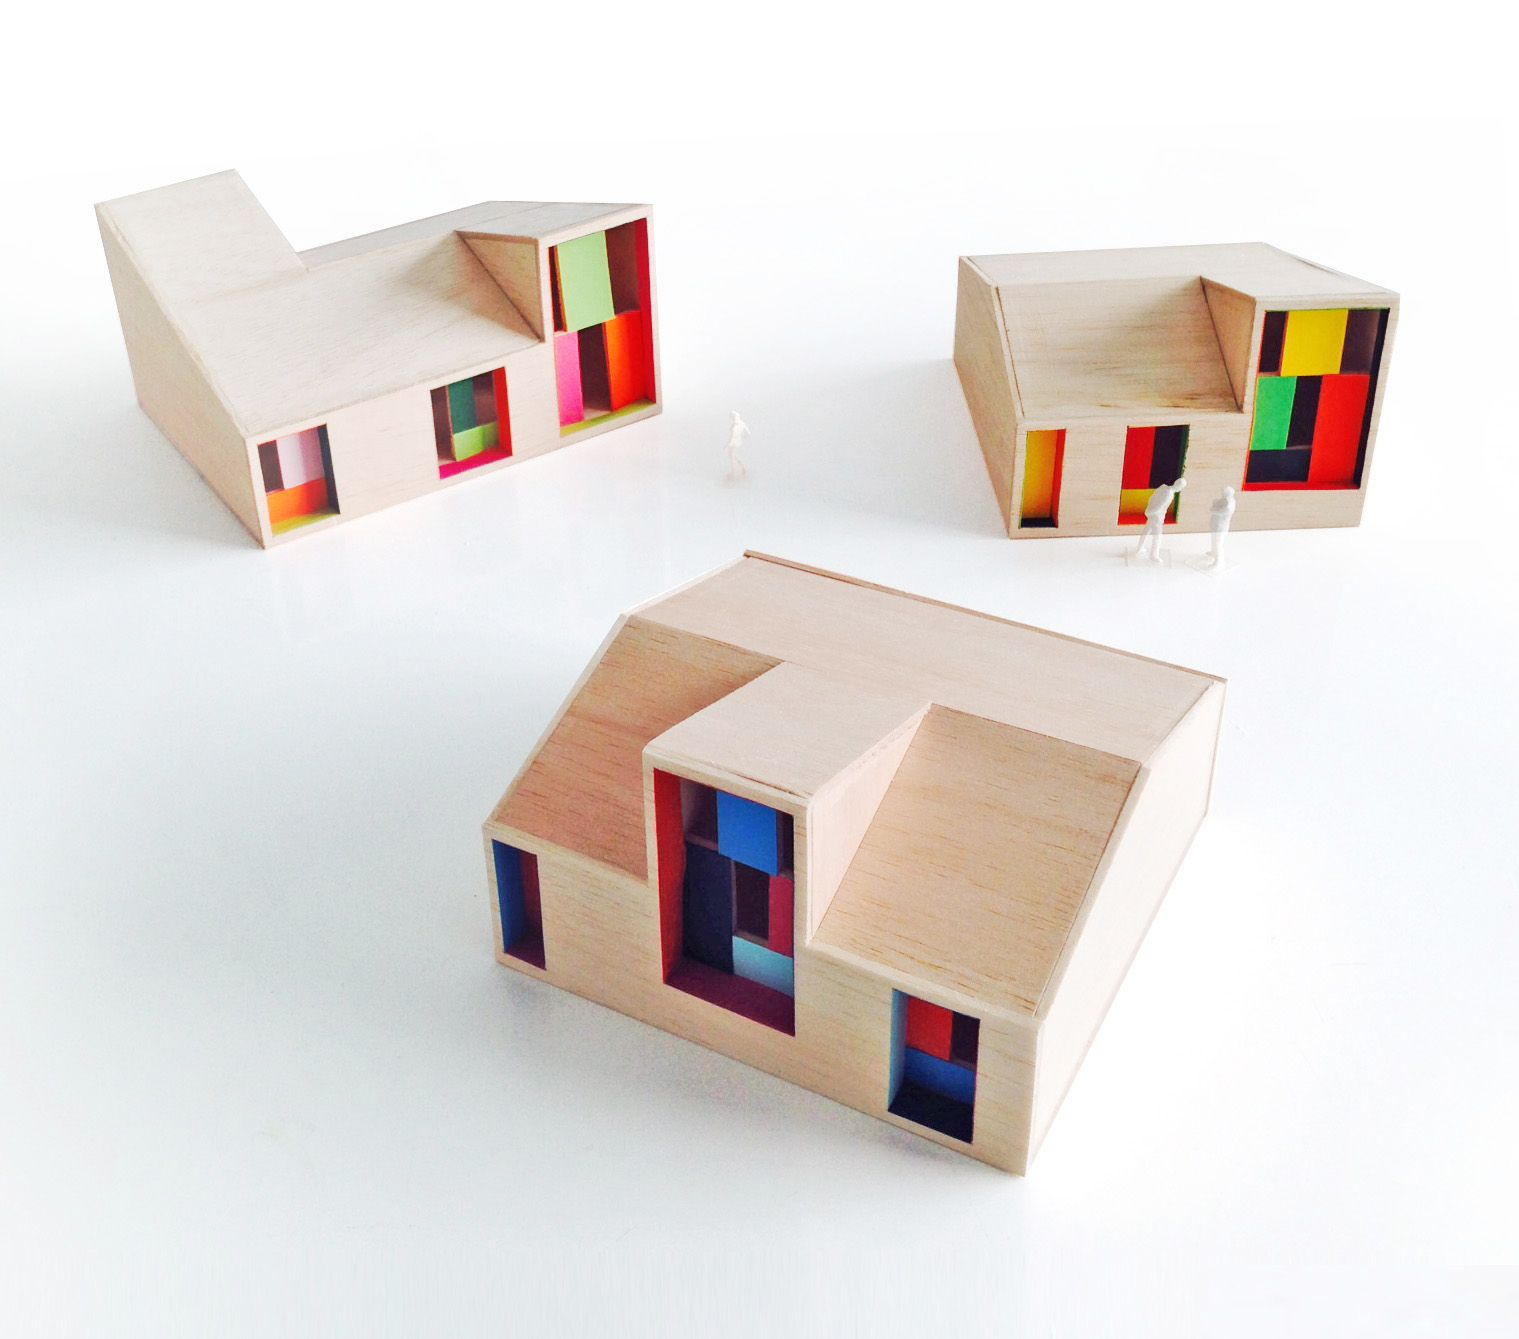 Parametric Social Houses for West Africa. 1:100 Prototypes.  #2014 #SUBARQUITECTURA #Architecture #model #Africa #lowcost #lowpoly #concrete #color #colorful #african